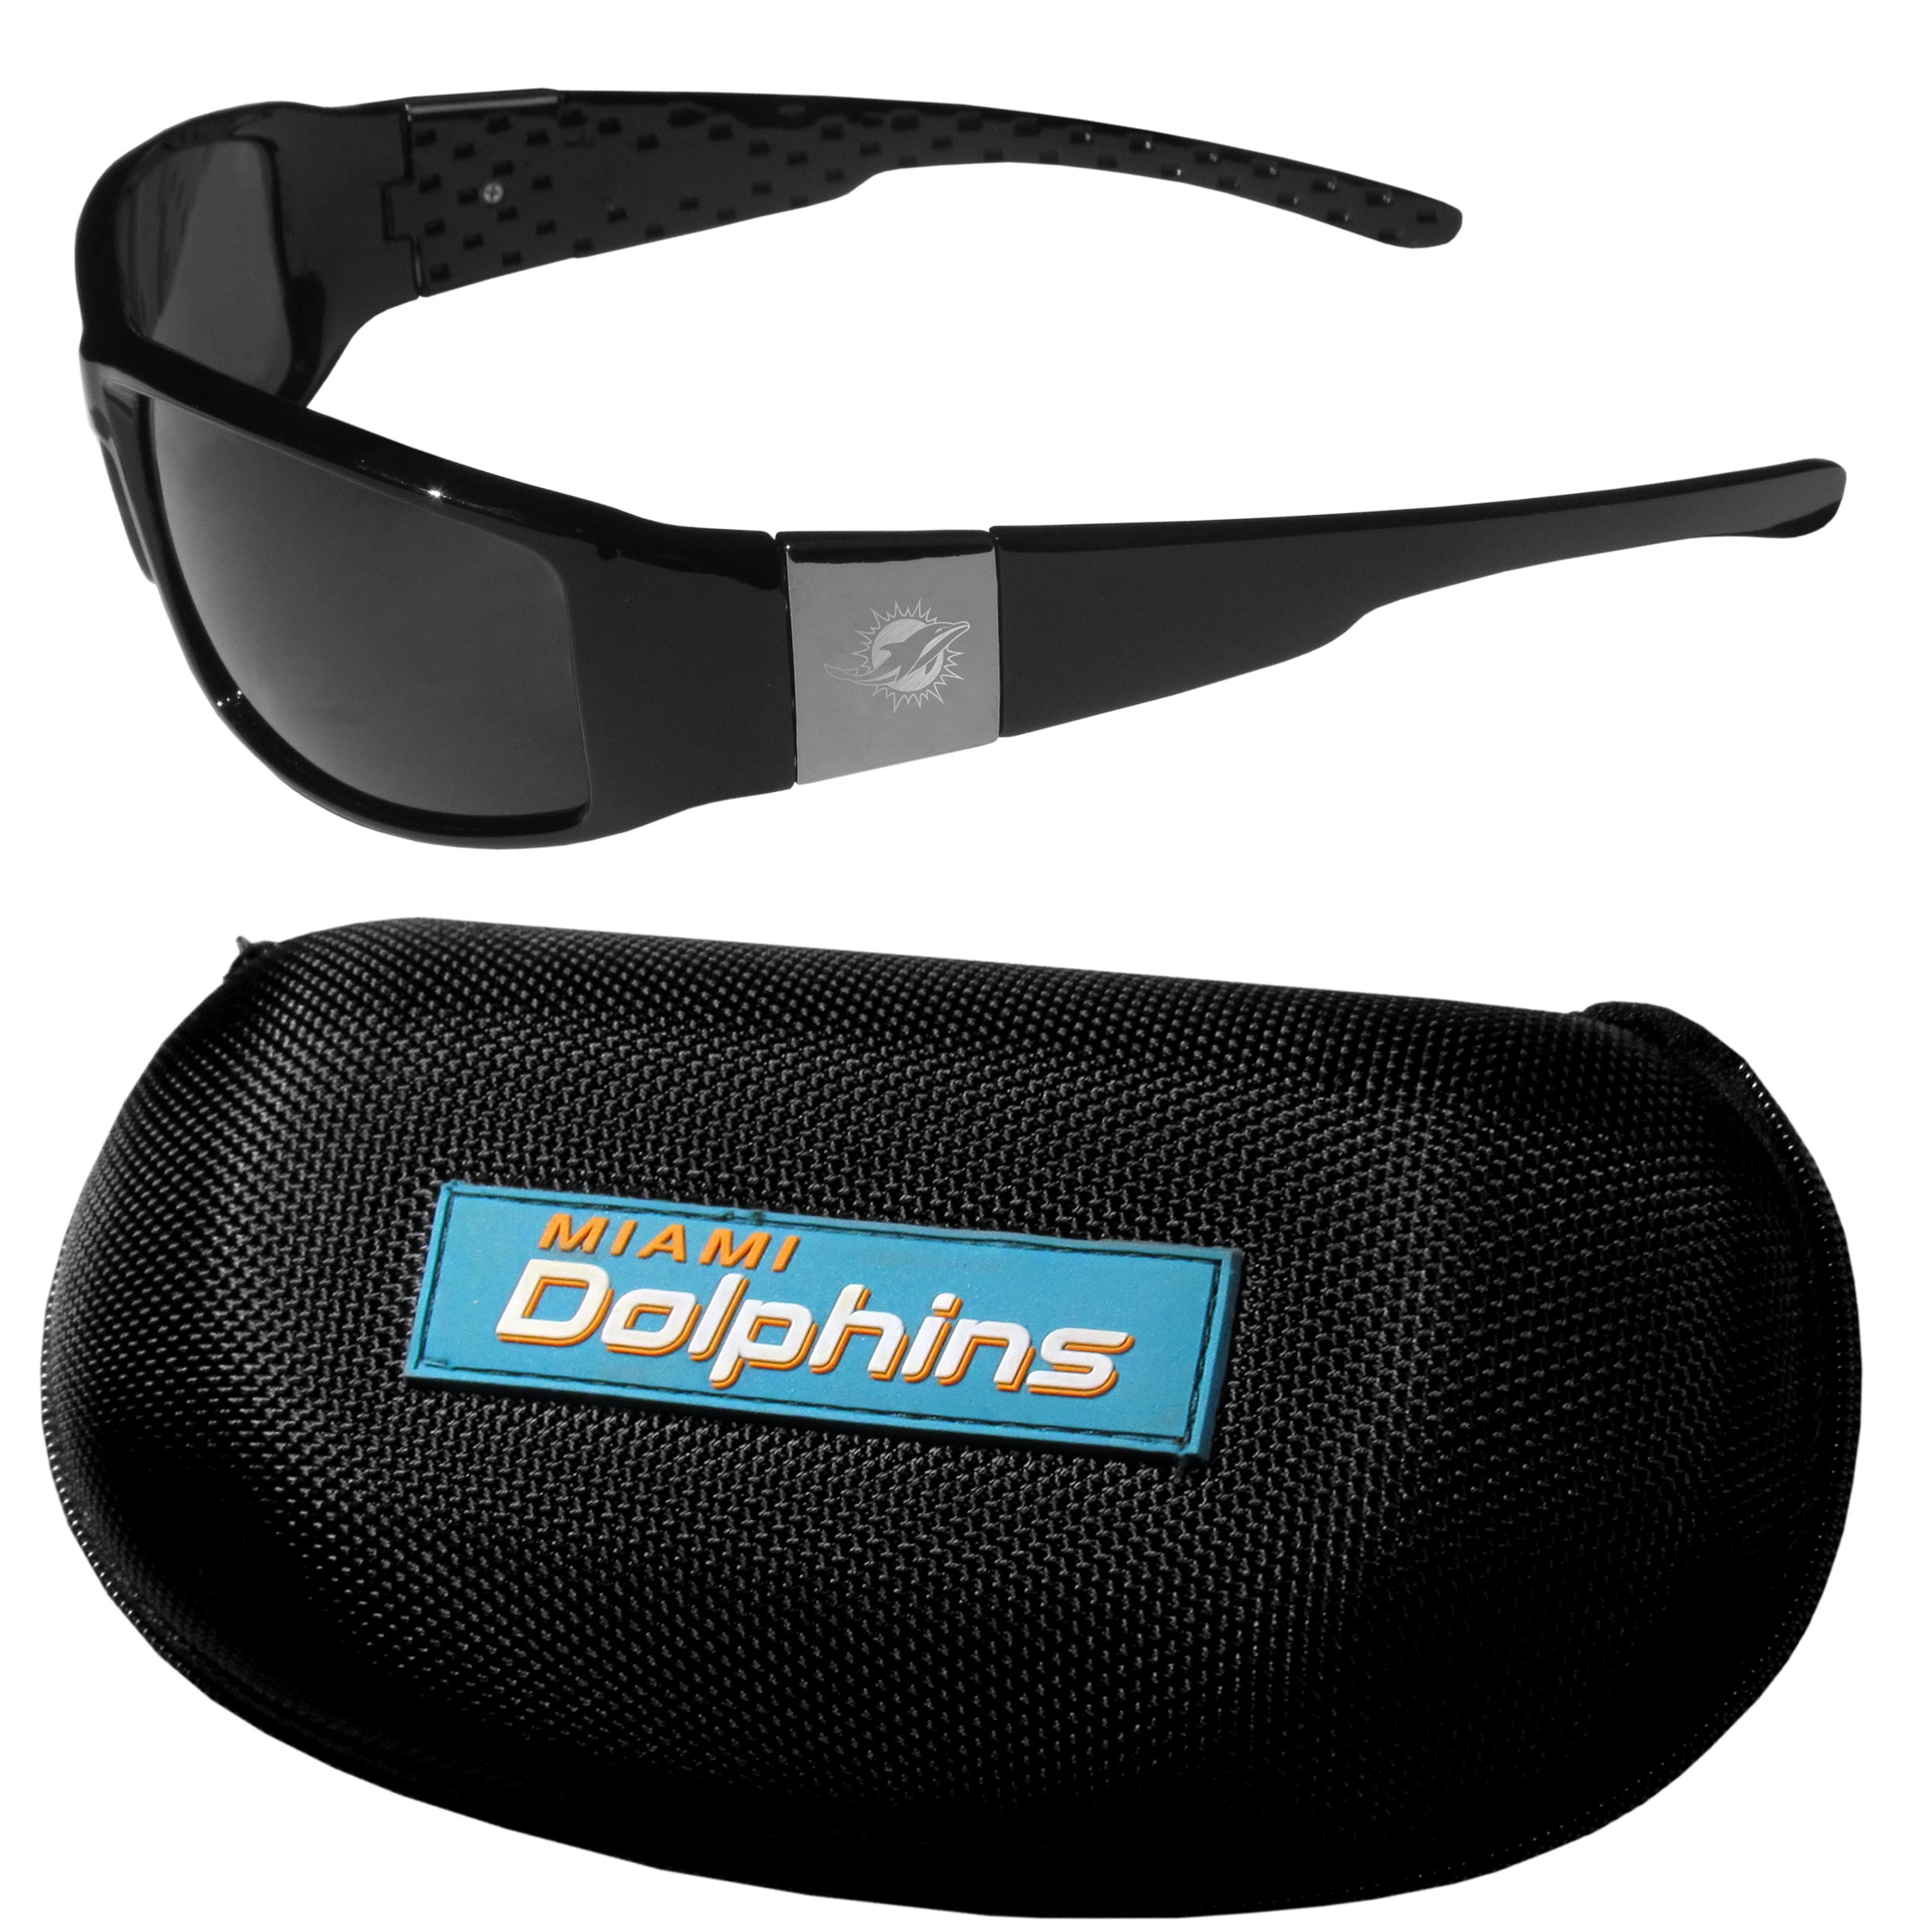 Miami Dolphins Chrome Wrap Sunglasses and Zippered Carrying Case - This set includes our sleek and stylish Miami Dolphins chrome wrap sunglasses and our hard shell, zippered carrying case. The sunglasses feature etched team logos on each arm and 100% UVA/UVB protection. The case features a large and colorful team emblem.